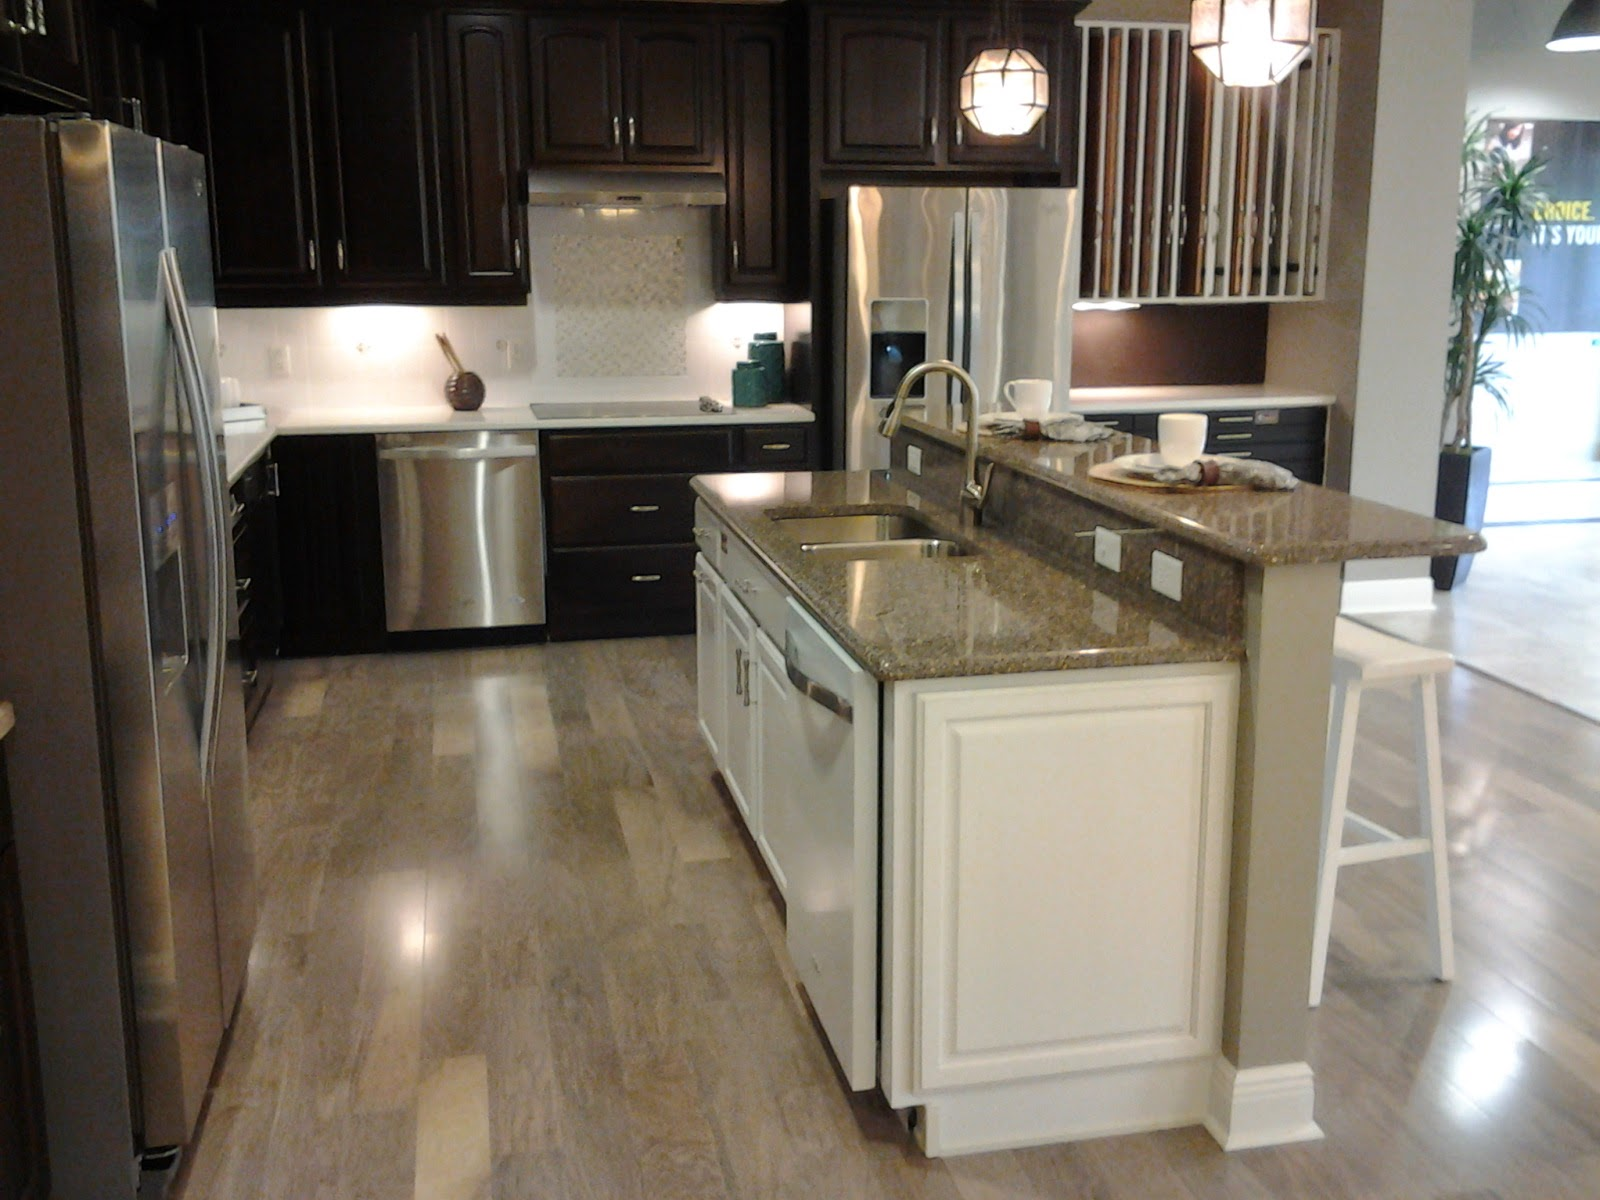 David barr 39 s sarasota and venice real estate blog venice for Kitchen cabinets venice fl